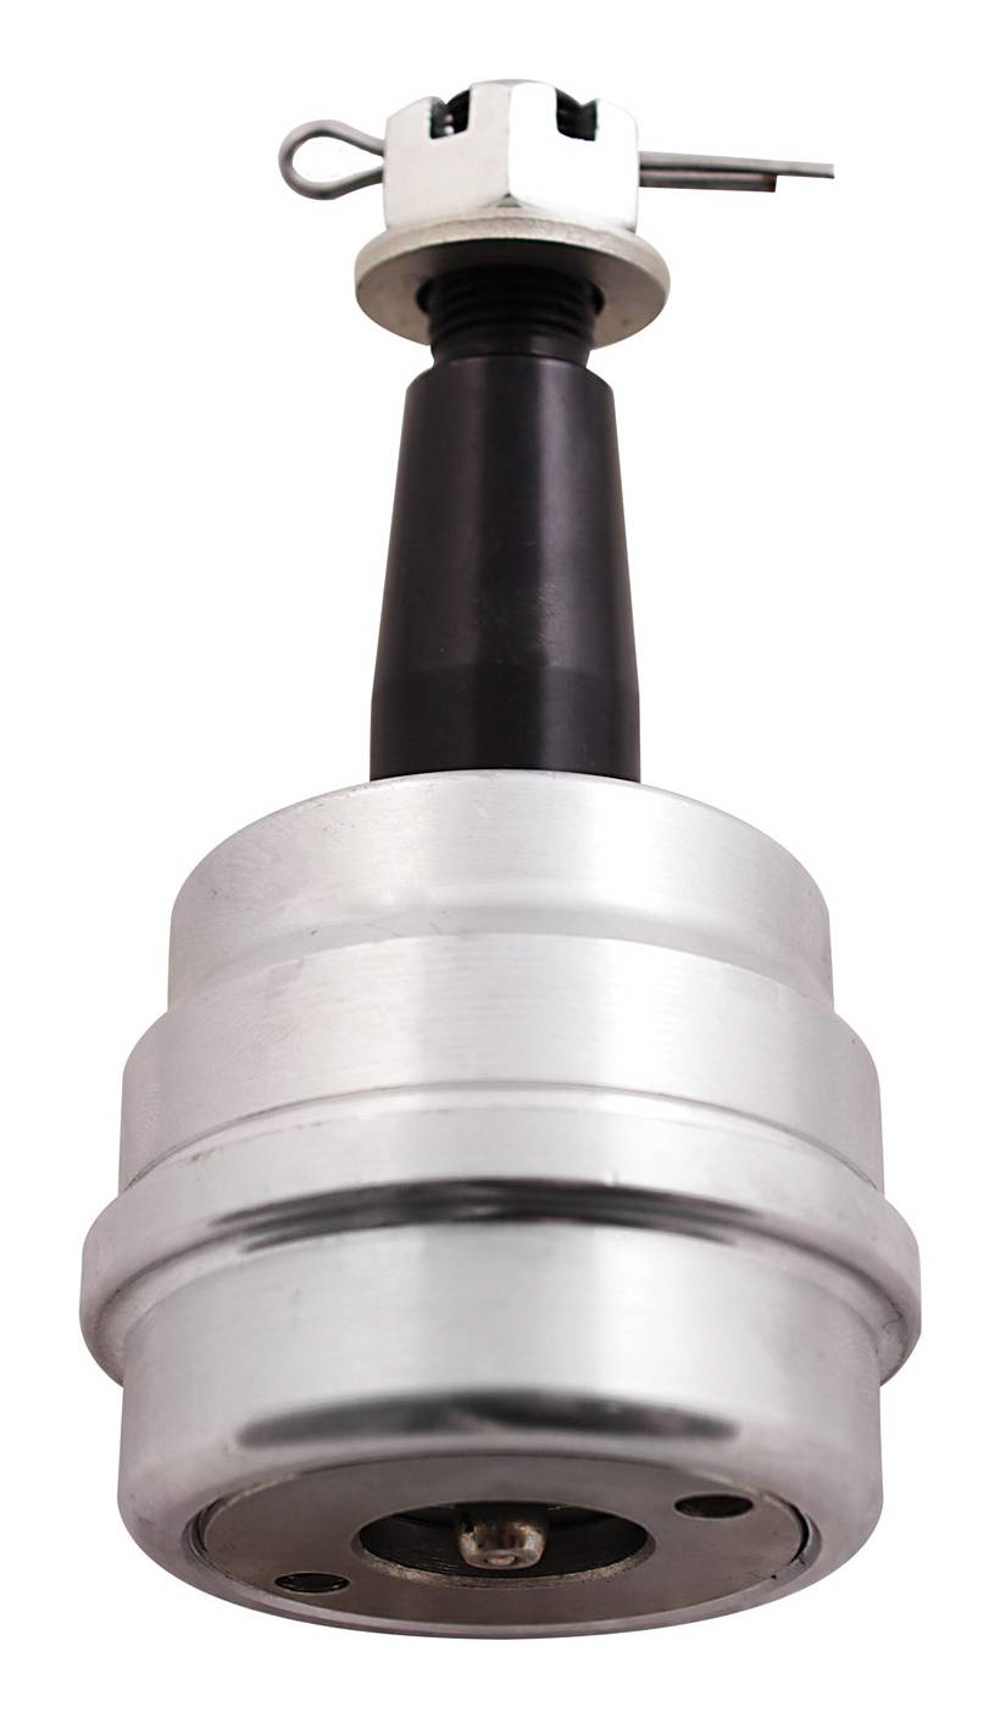 QA1 1210-108 Ball Joint, Greasable, Lower, Press-In, 2.000 in/ft Taper, 4.625 in Stud, 5/8-18 in Thread, Steel, Each